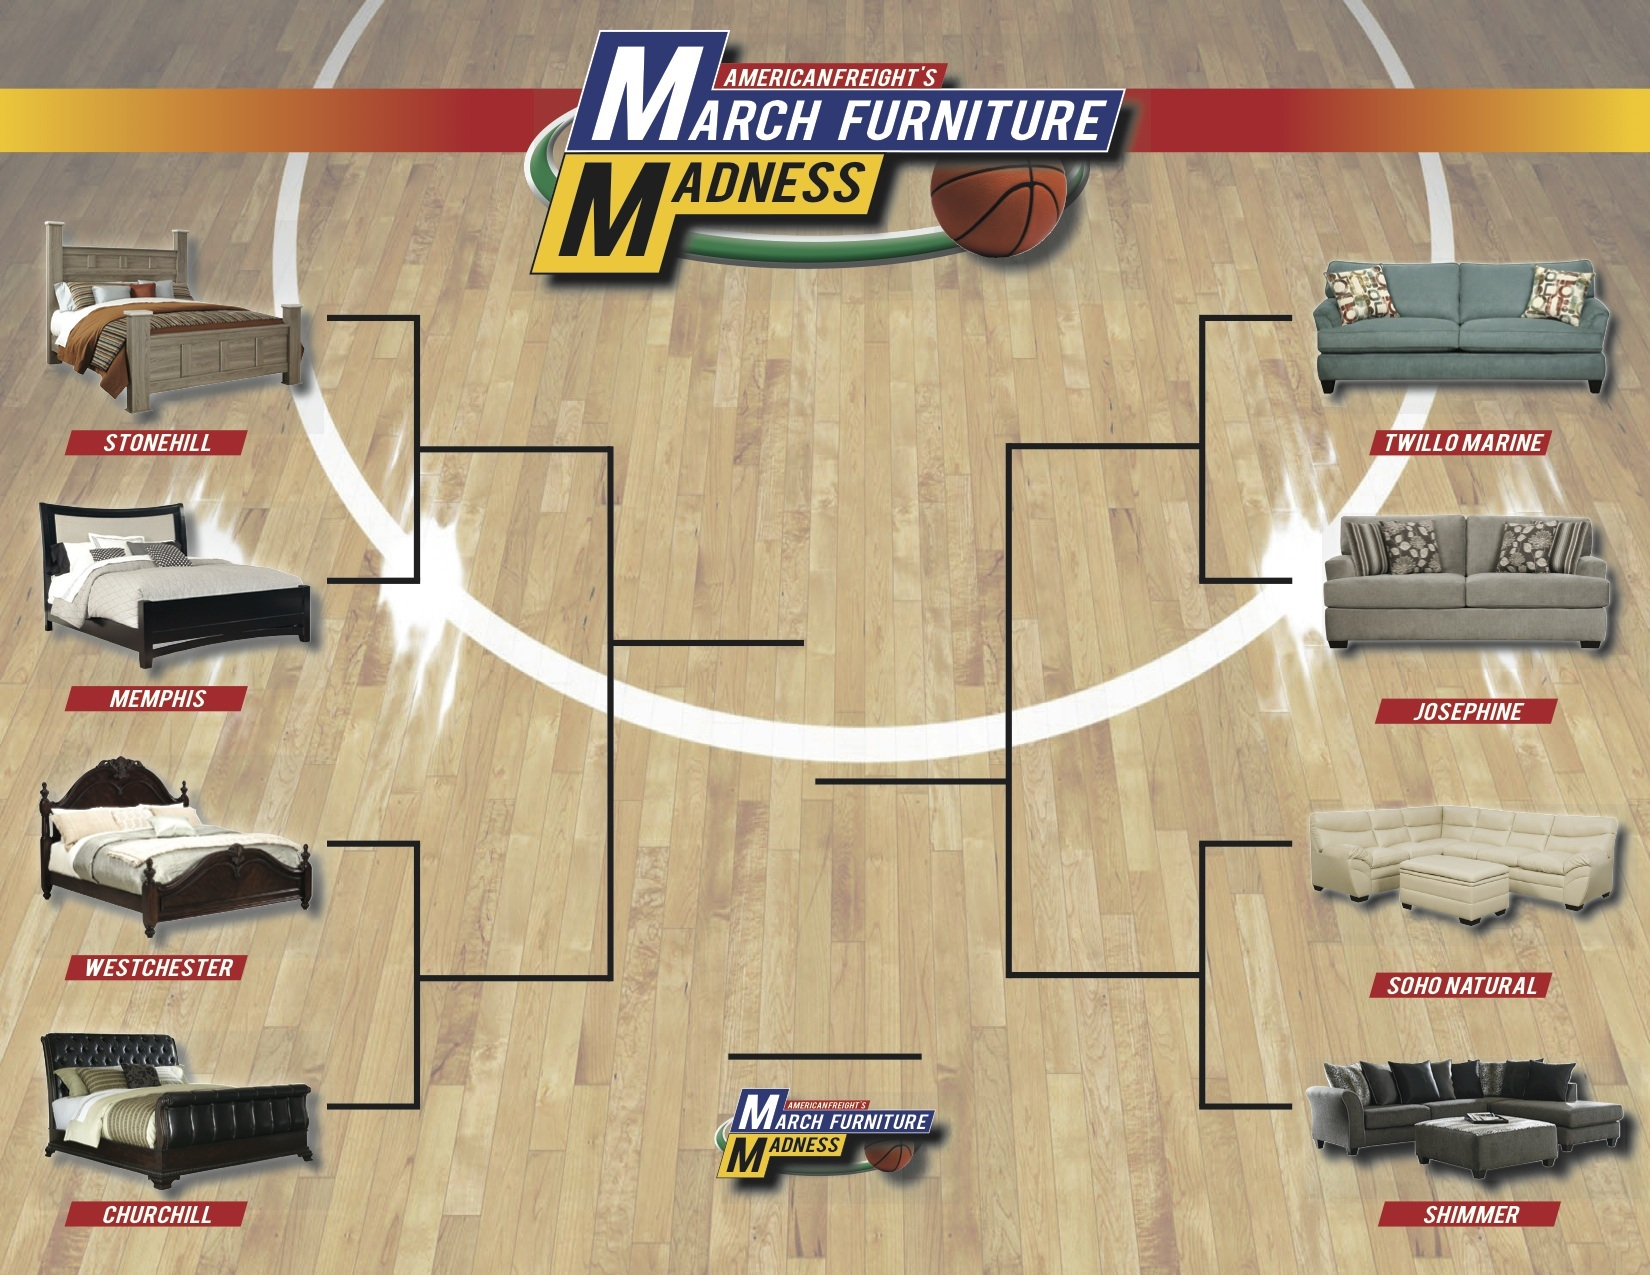 March Furniture Madness Begins on Friday, March 14th